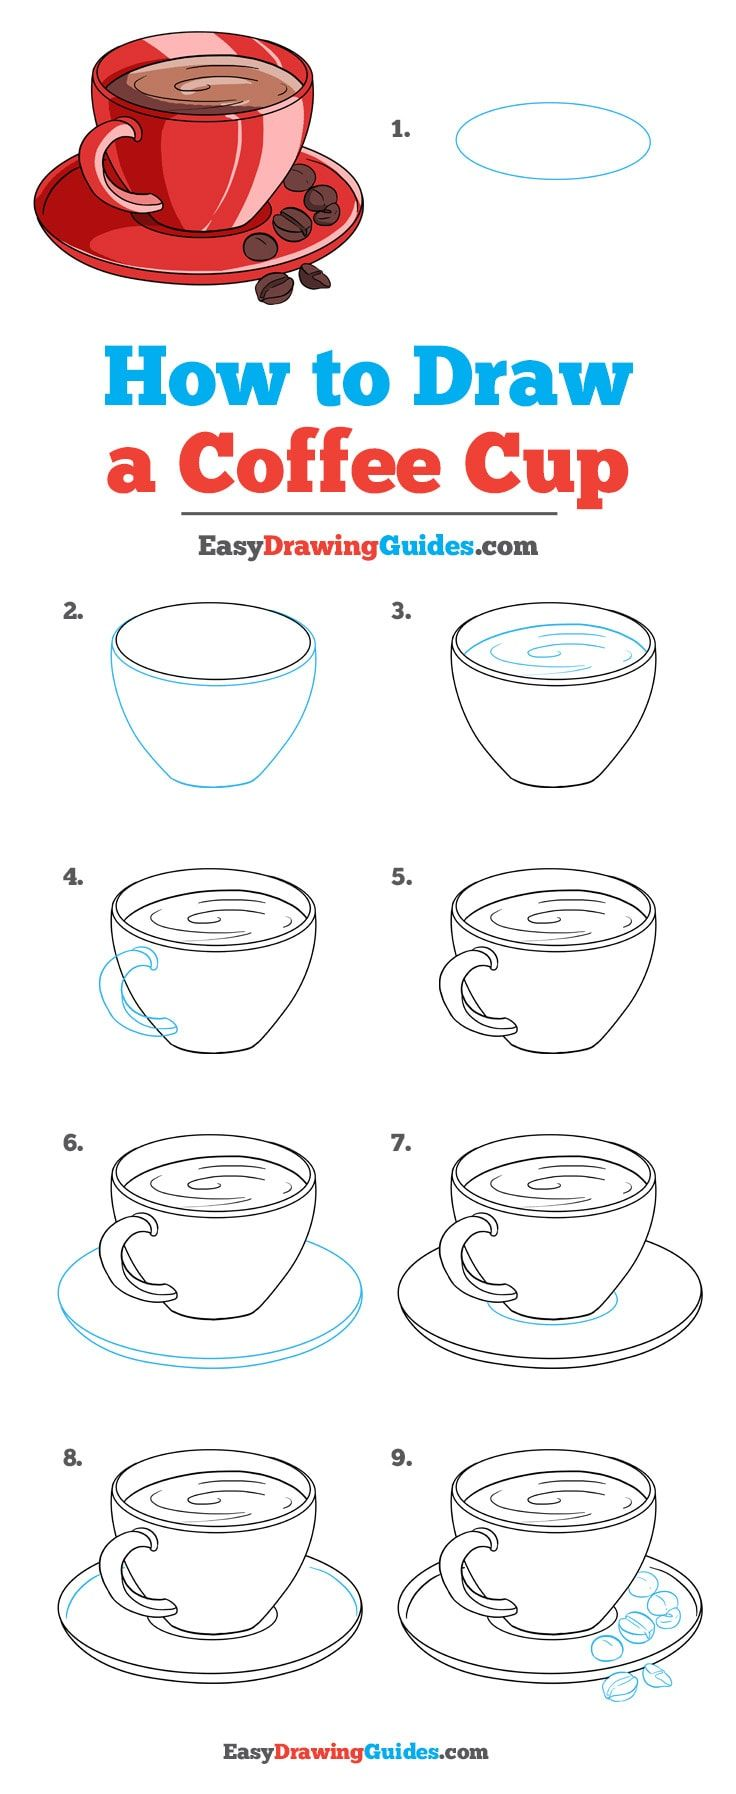 How to Draw a Coffee Cup - Really Easy Drawing Tutorial